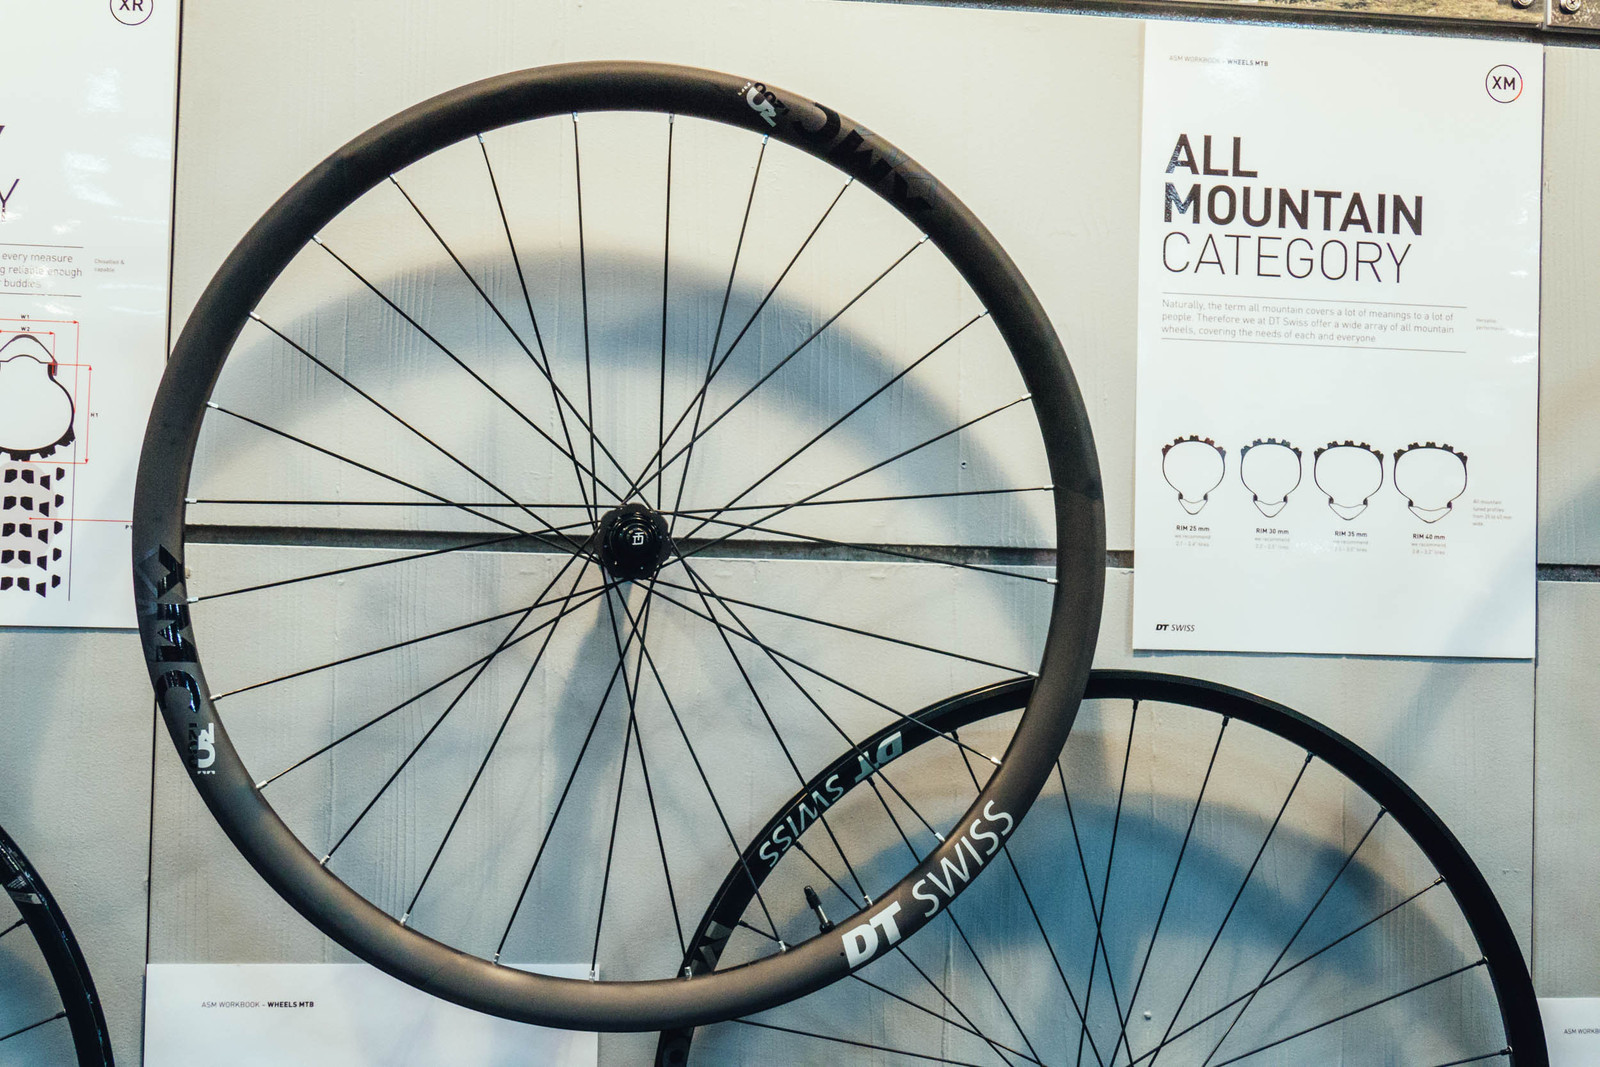 DT Swiss Takes Its Ultra-Light XMC1200 Spline Carbon Wheelset Wider